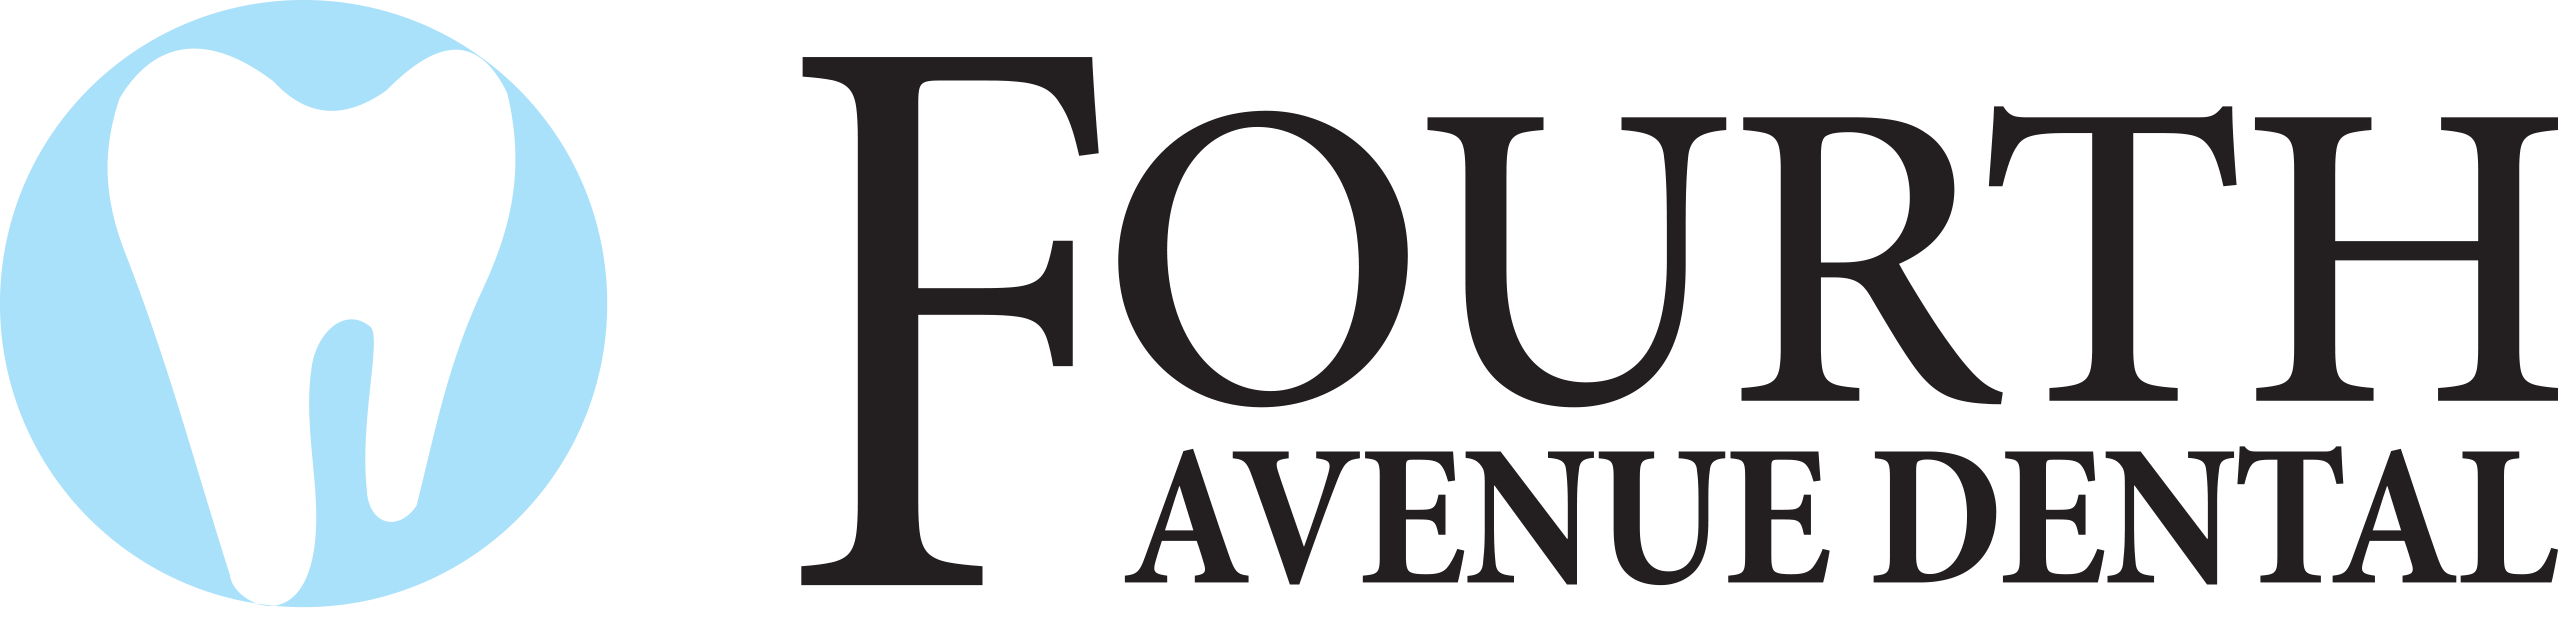 4th Avenue Dental